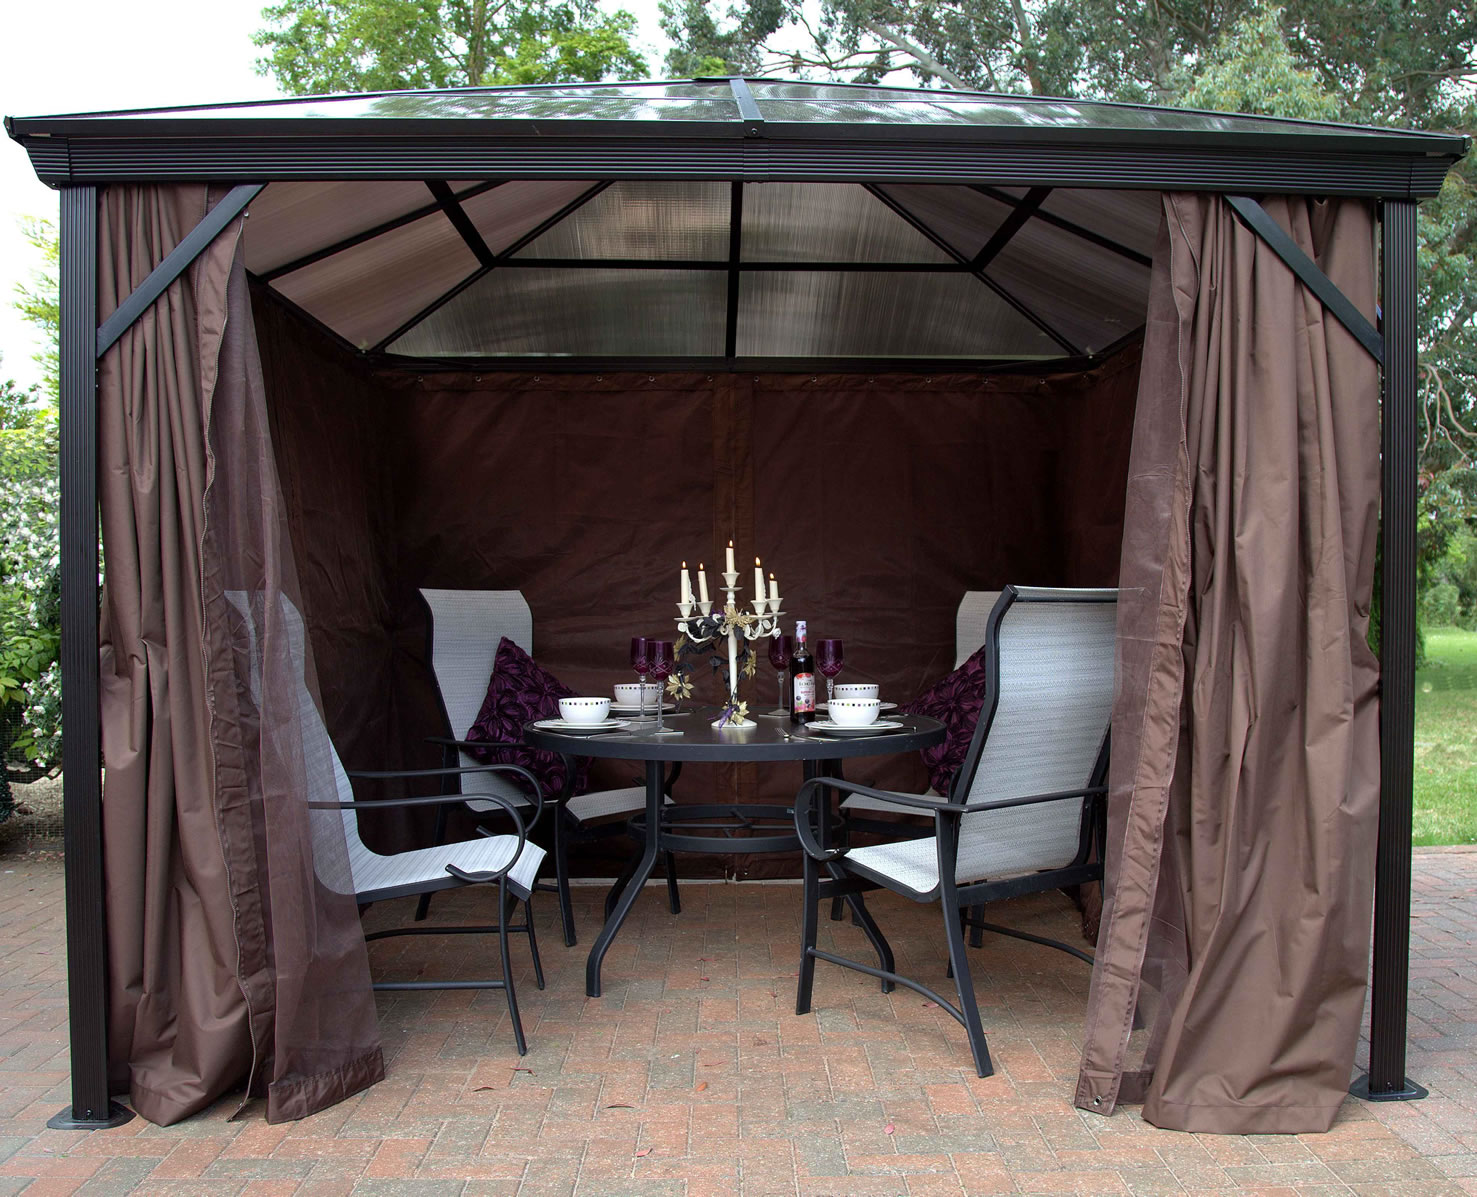 Extra image of Runcton 3.0 x 3.0m Square Polycarbonate Gazebo - Brown